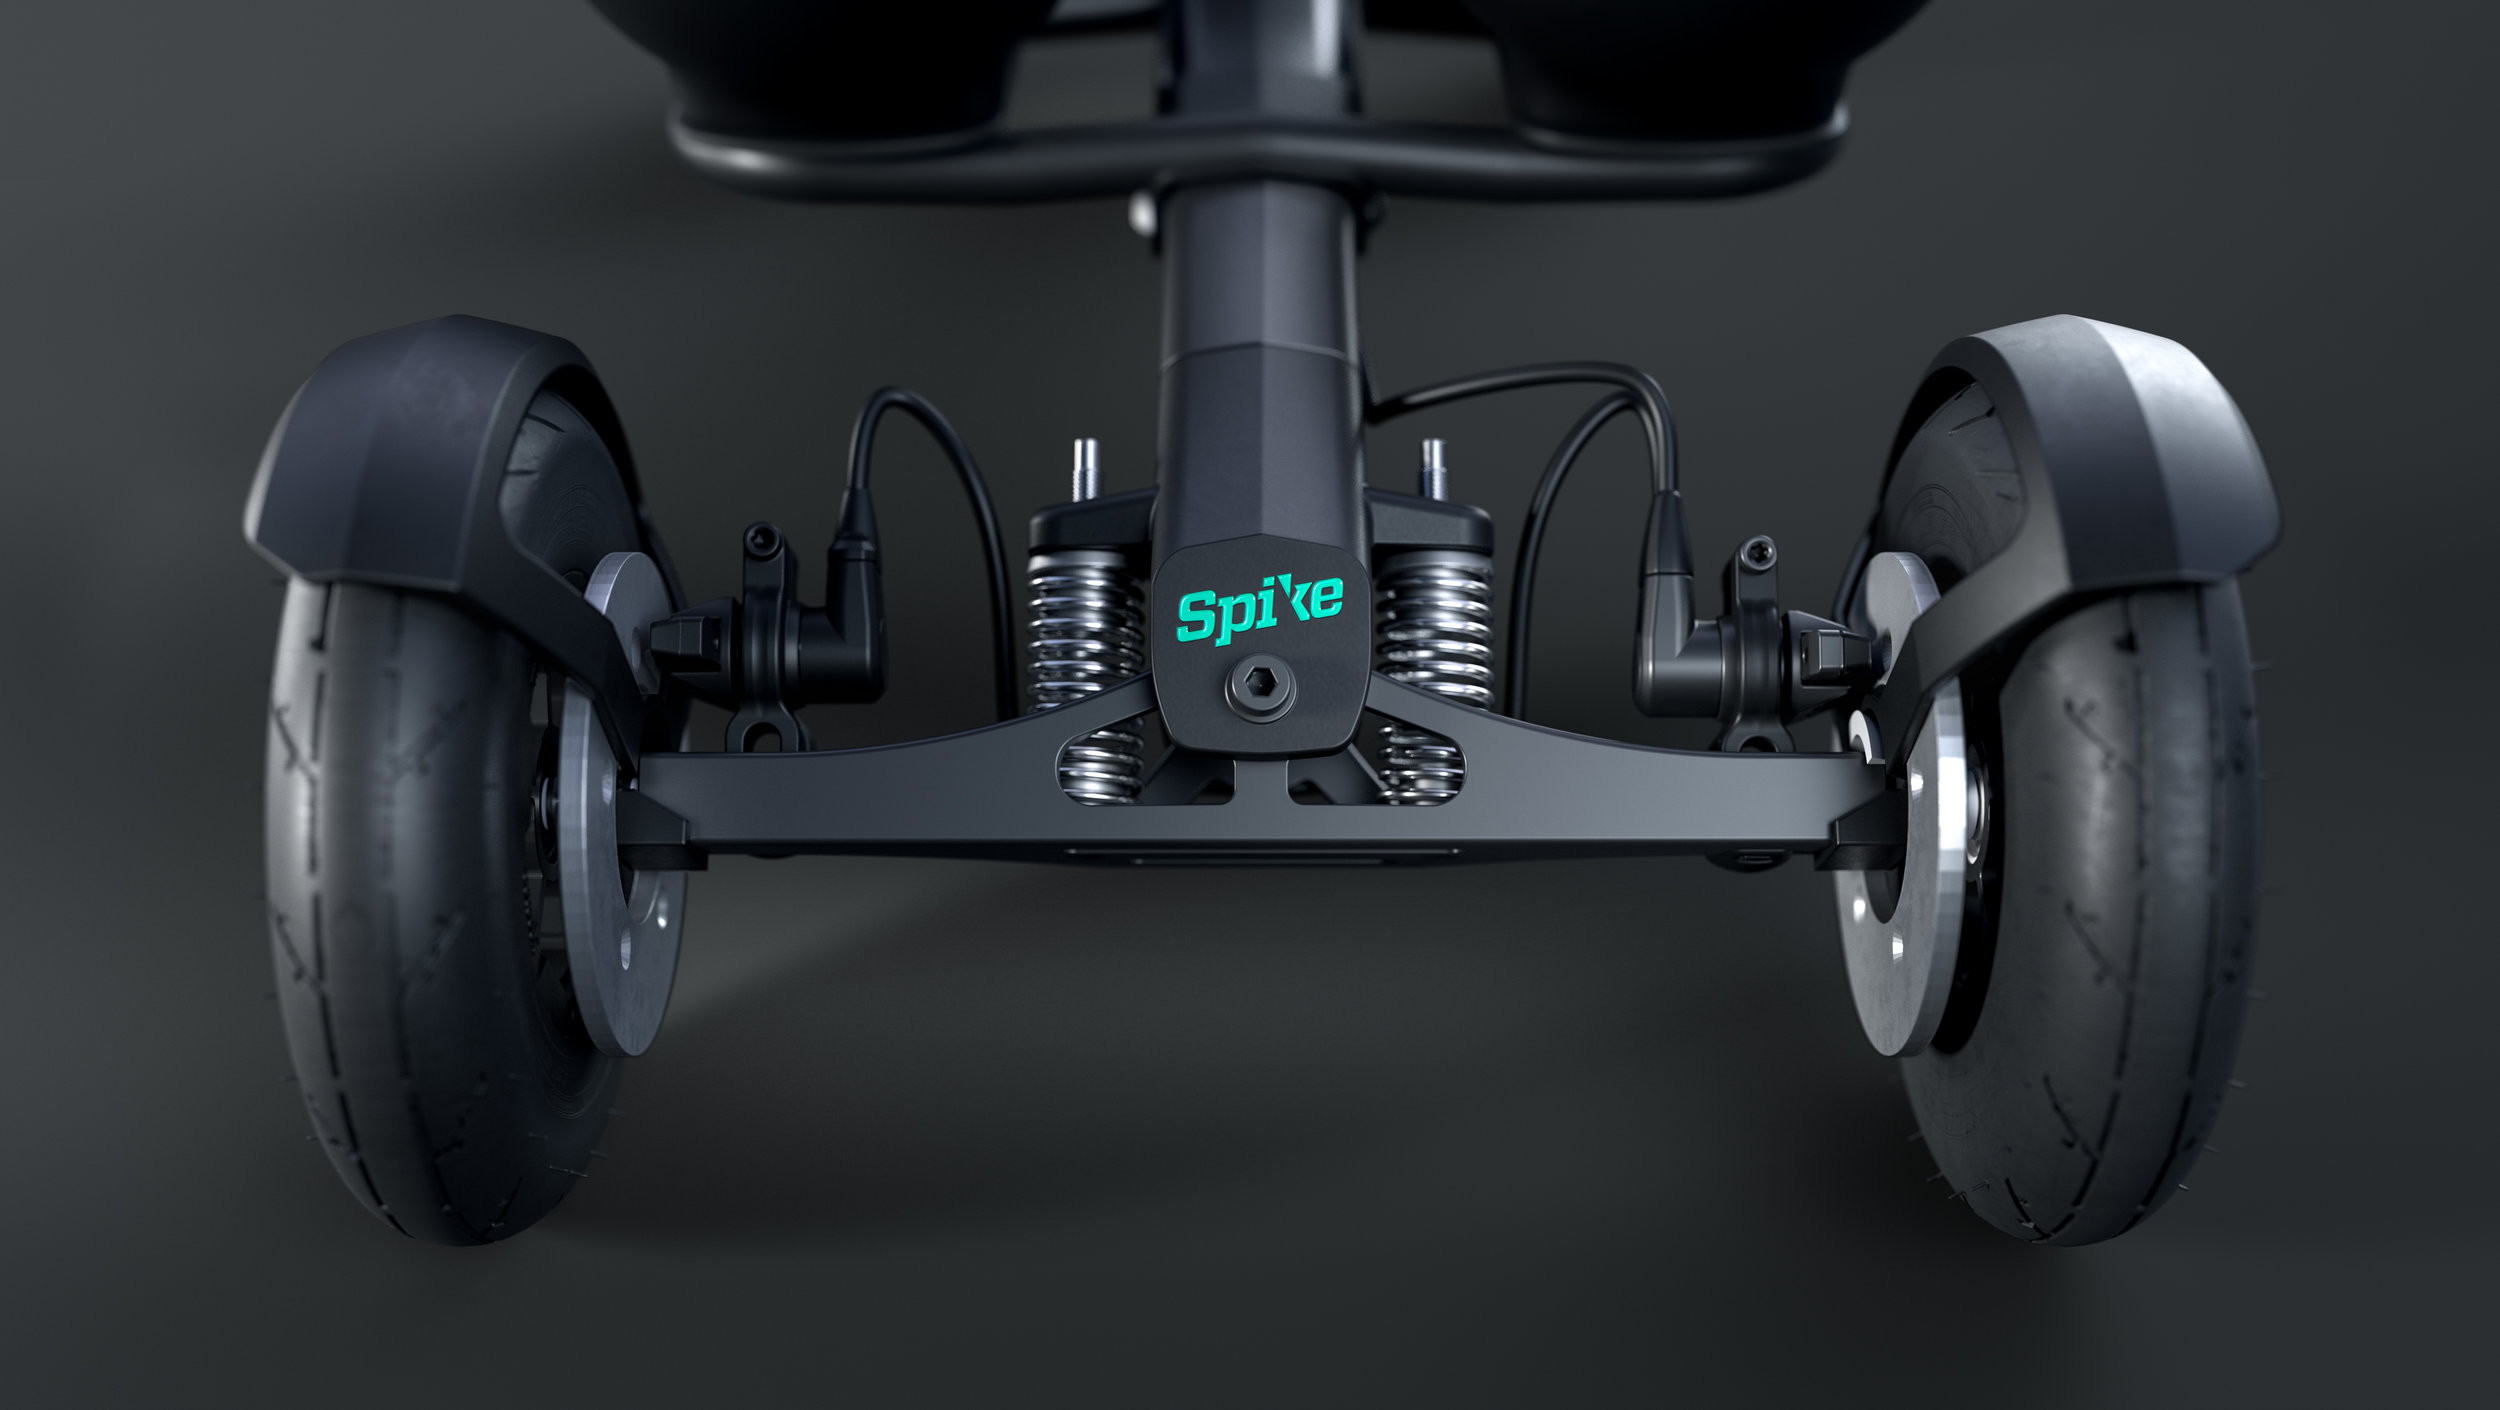 STEERING SYSTEM - With Spike you can steer by moving your upper torso to each side while generating forward propulsion with ski poles. If you have uneven weight distribution or are stronger on one side, this can easily be adjusted.